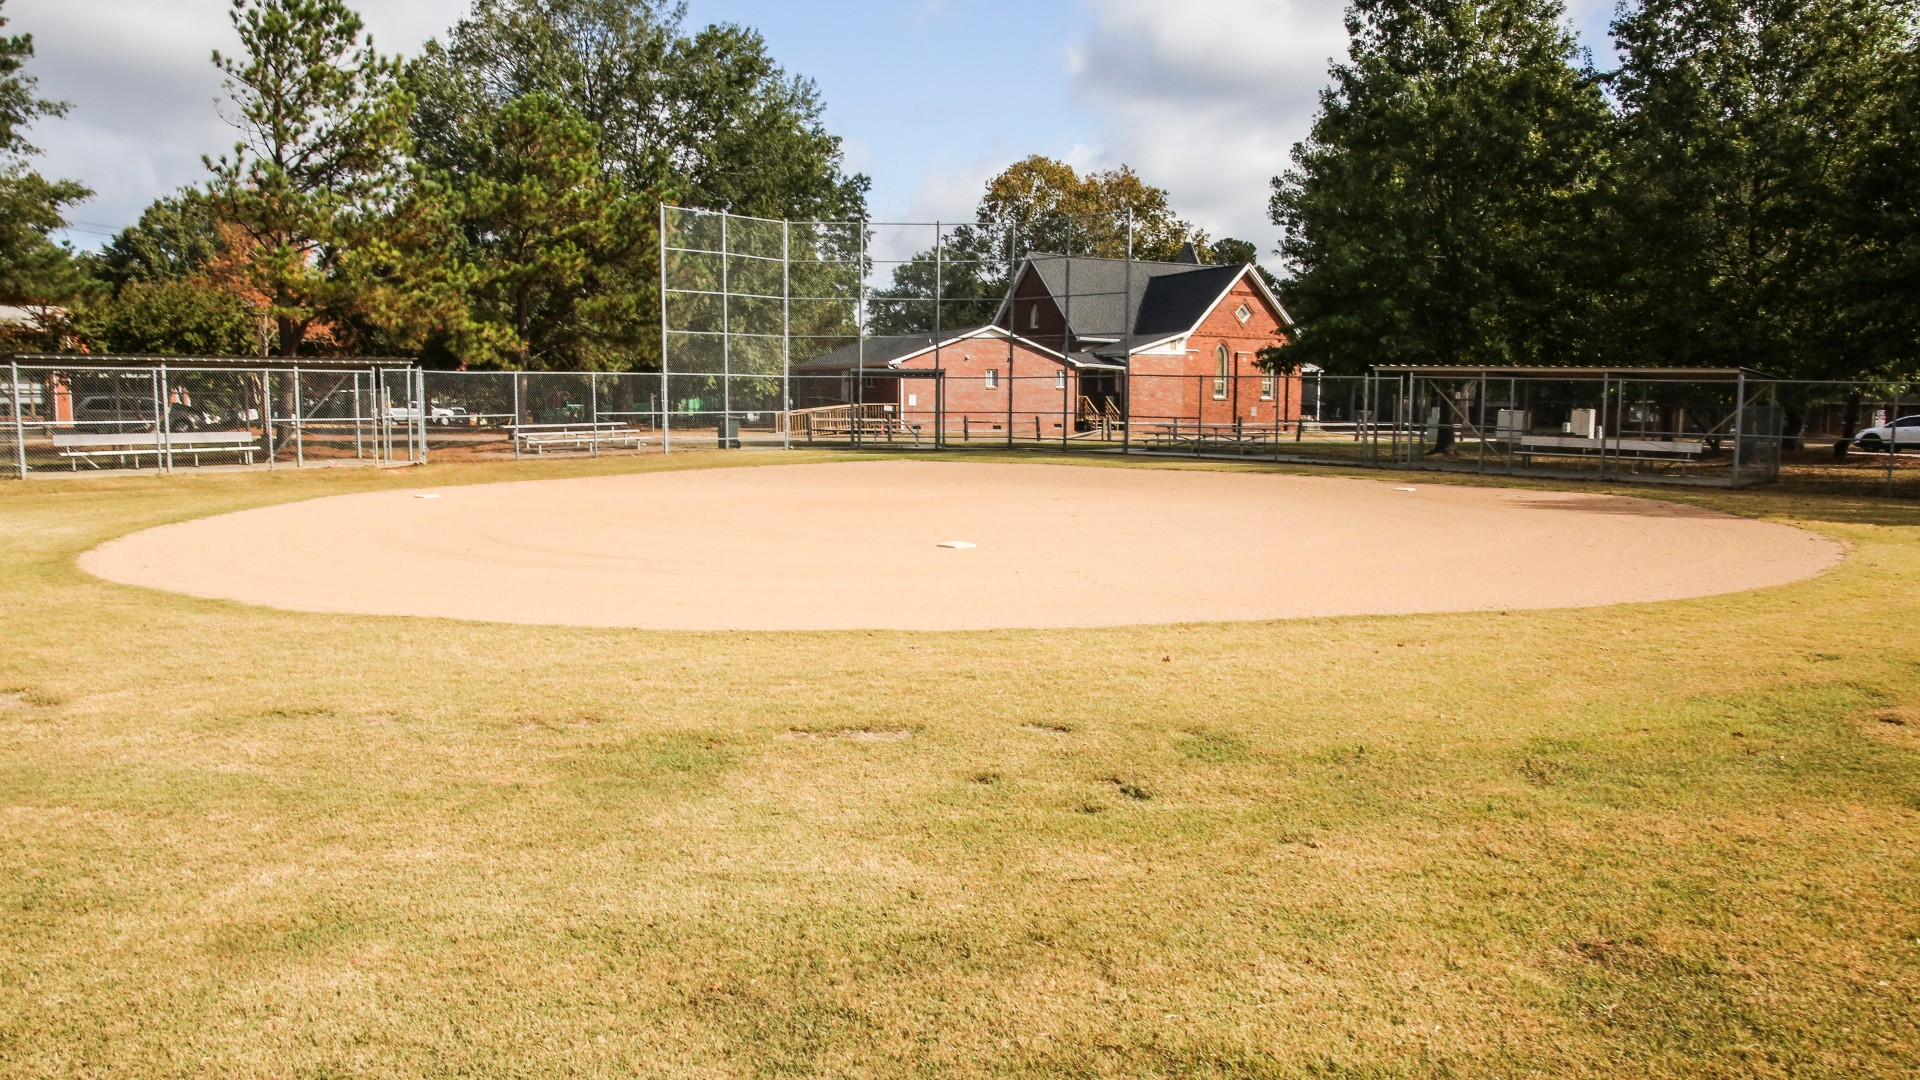 An outdoor youth baseball field at Method Road Park